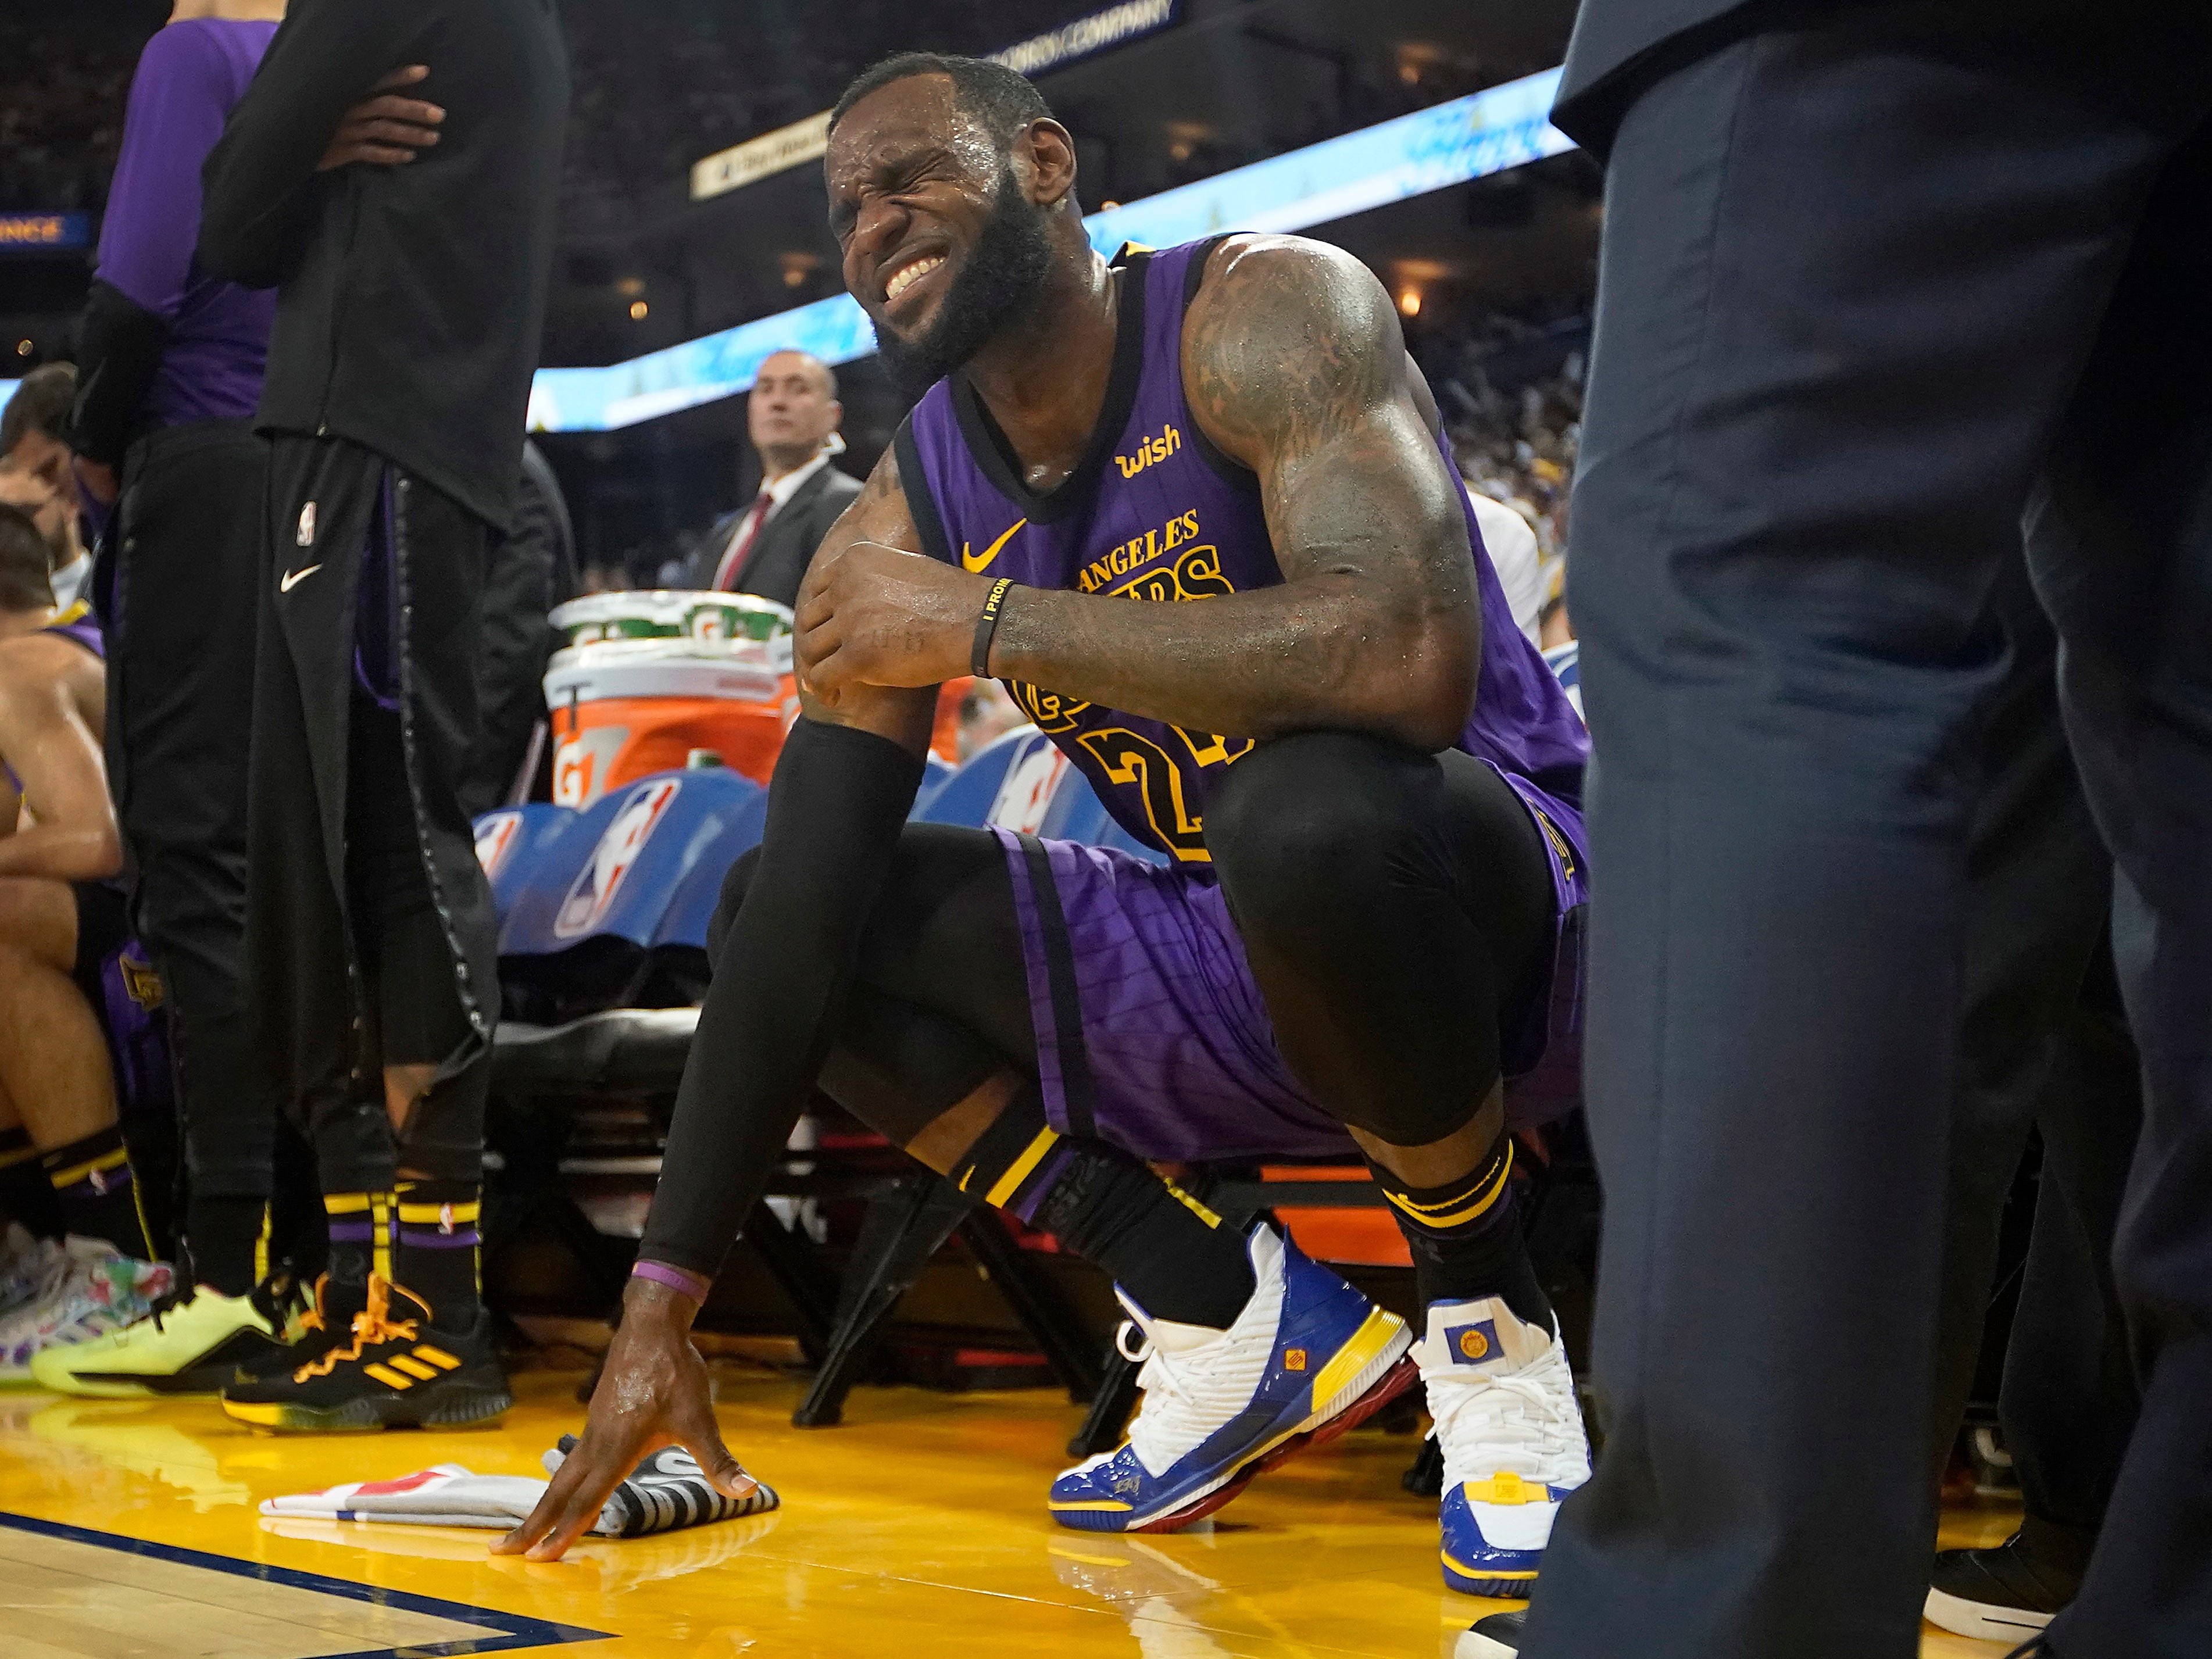 Dec. 25, 2018: The Lakers' marquee Christmas Day matchup against the Warriors was spoiled when LeBron James suffered a strained groin. James exited early in the third quarter, but Los Angeles overcame his absence for a 127-101 win.